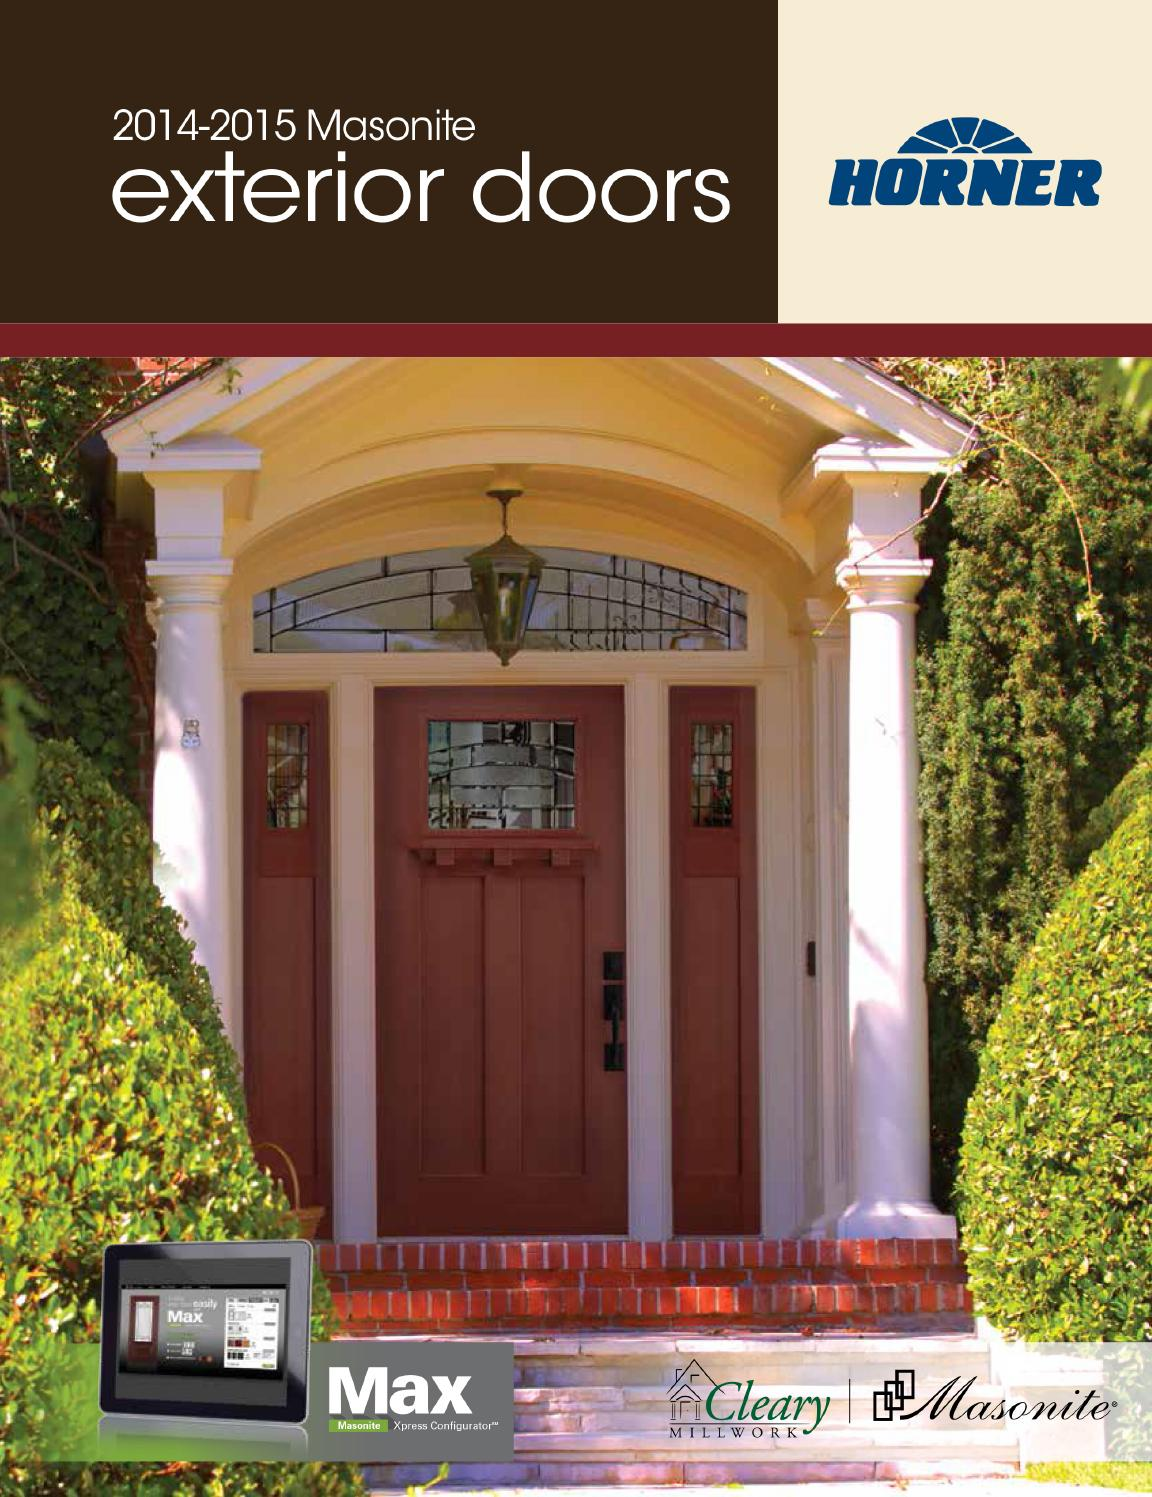 1497 #9D9C2E Masonite Steel & Fiberglass Exterior Door Full Line Catalog By Horner  wallpaper Masonite Fiberglass Exterior Doors 43651152